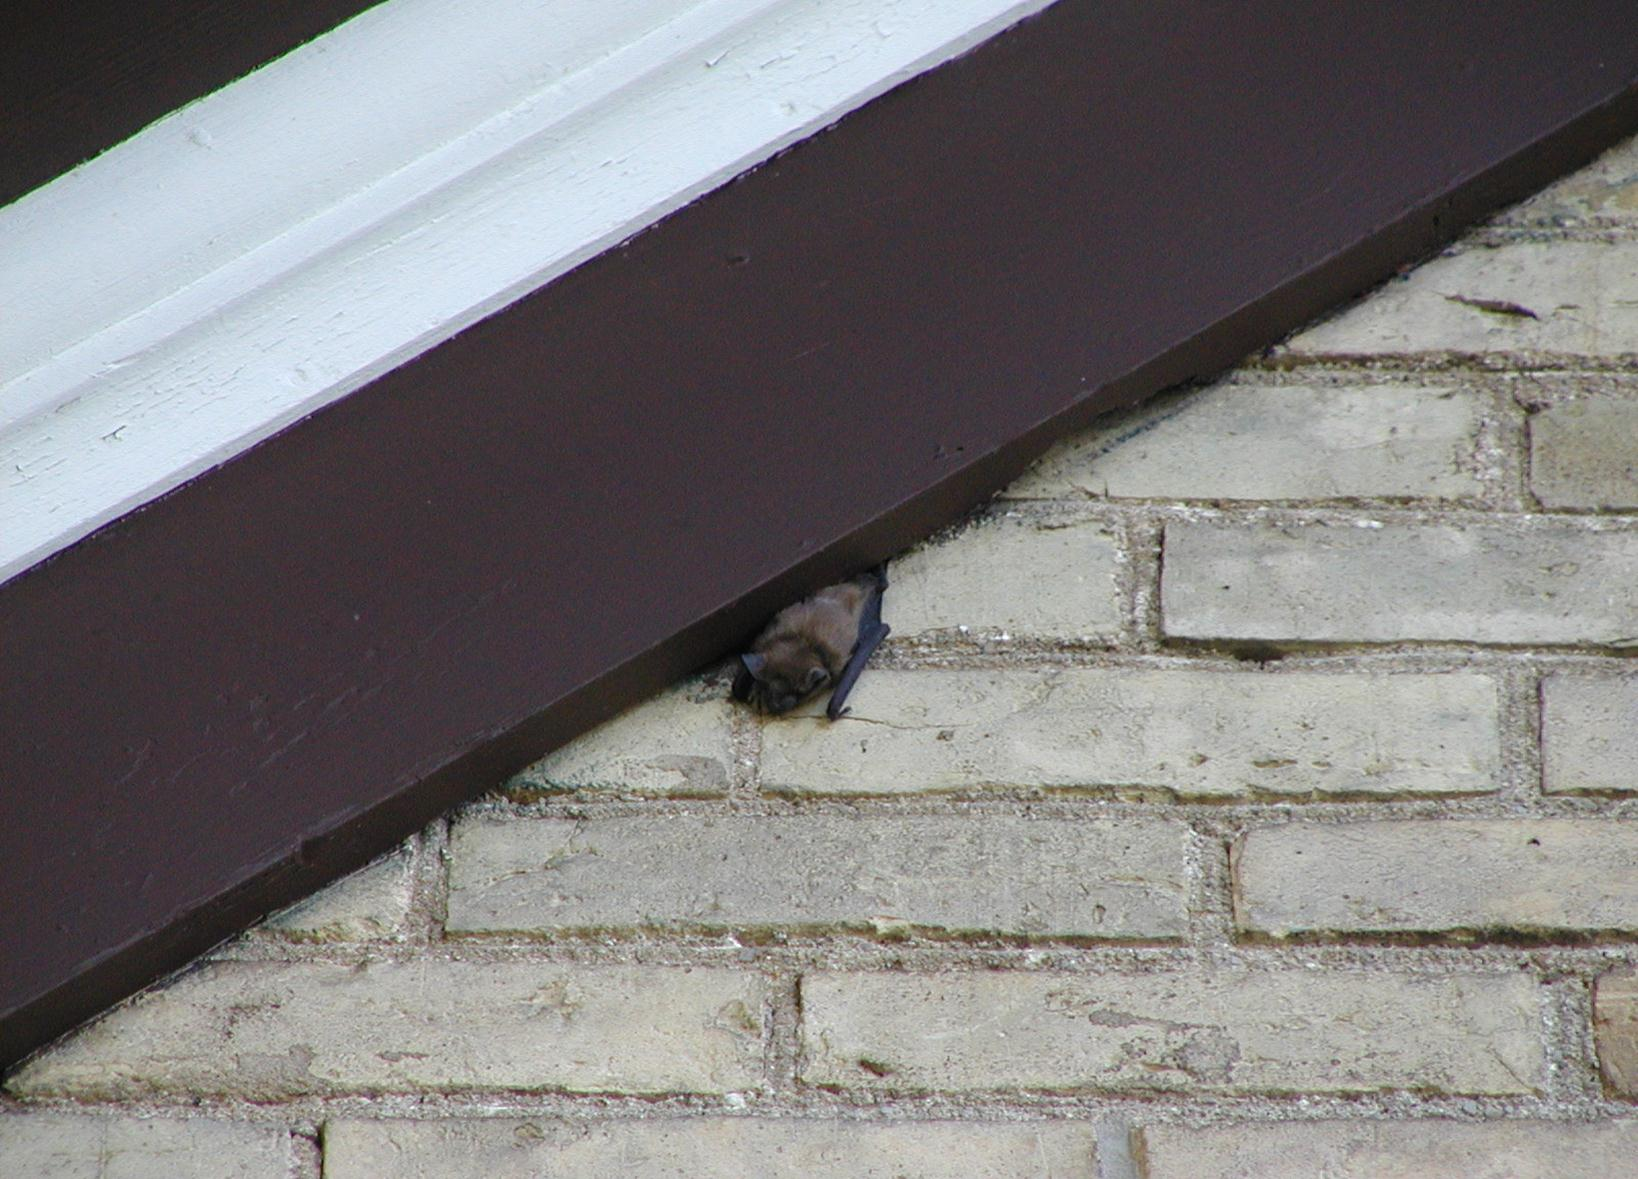 A bat squeezing it's way out of an attic